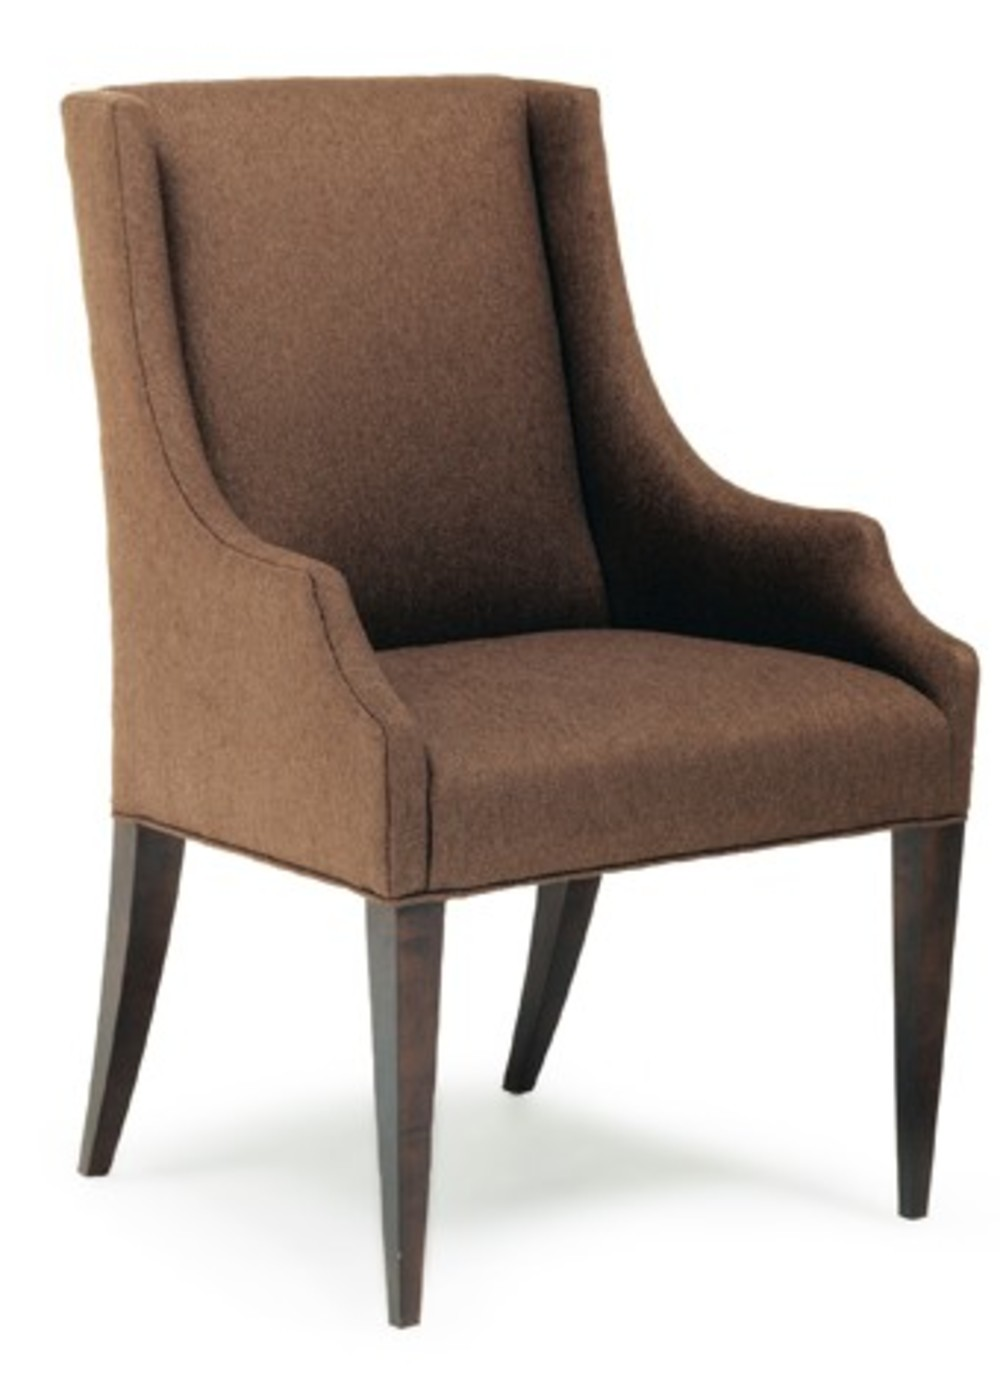 Precedent - Reid Dining Arm Chair